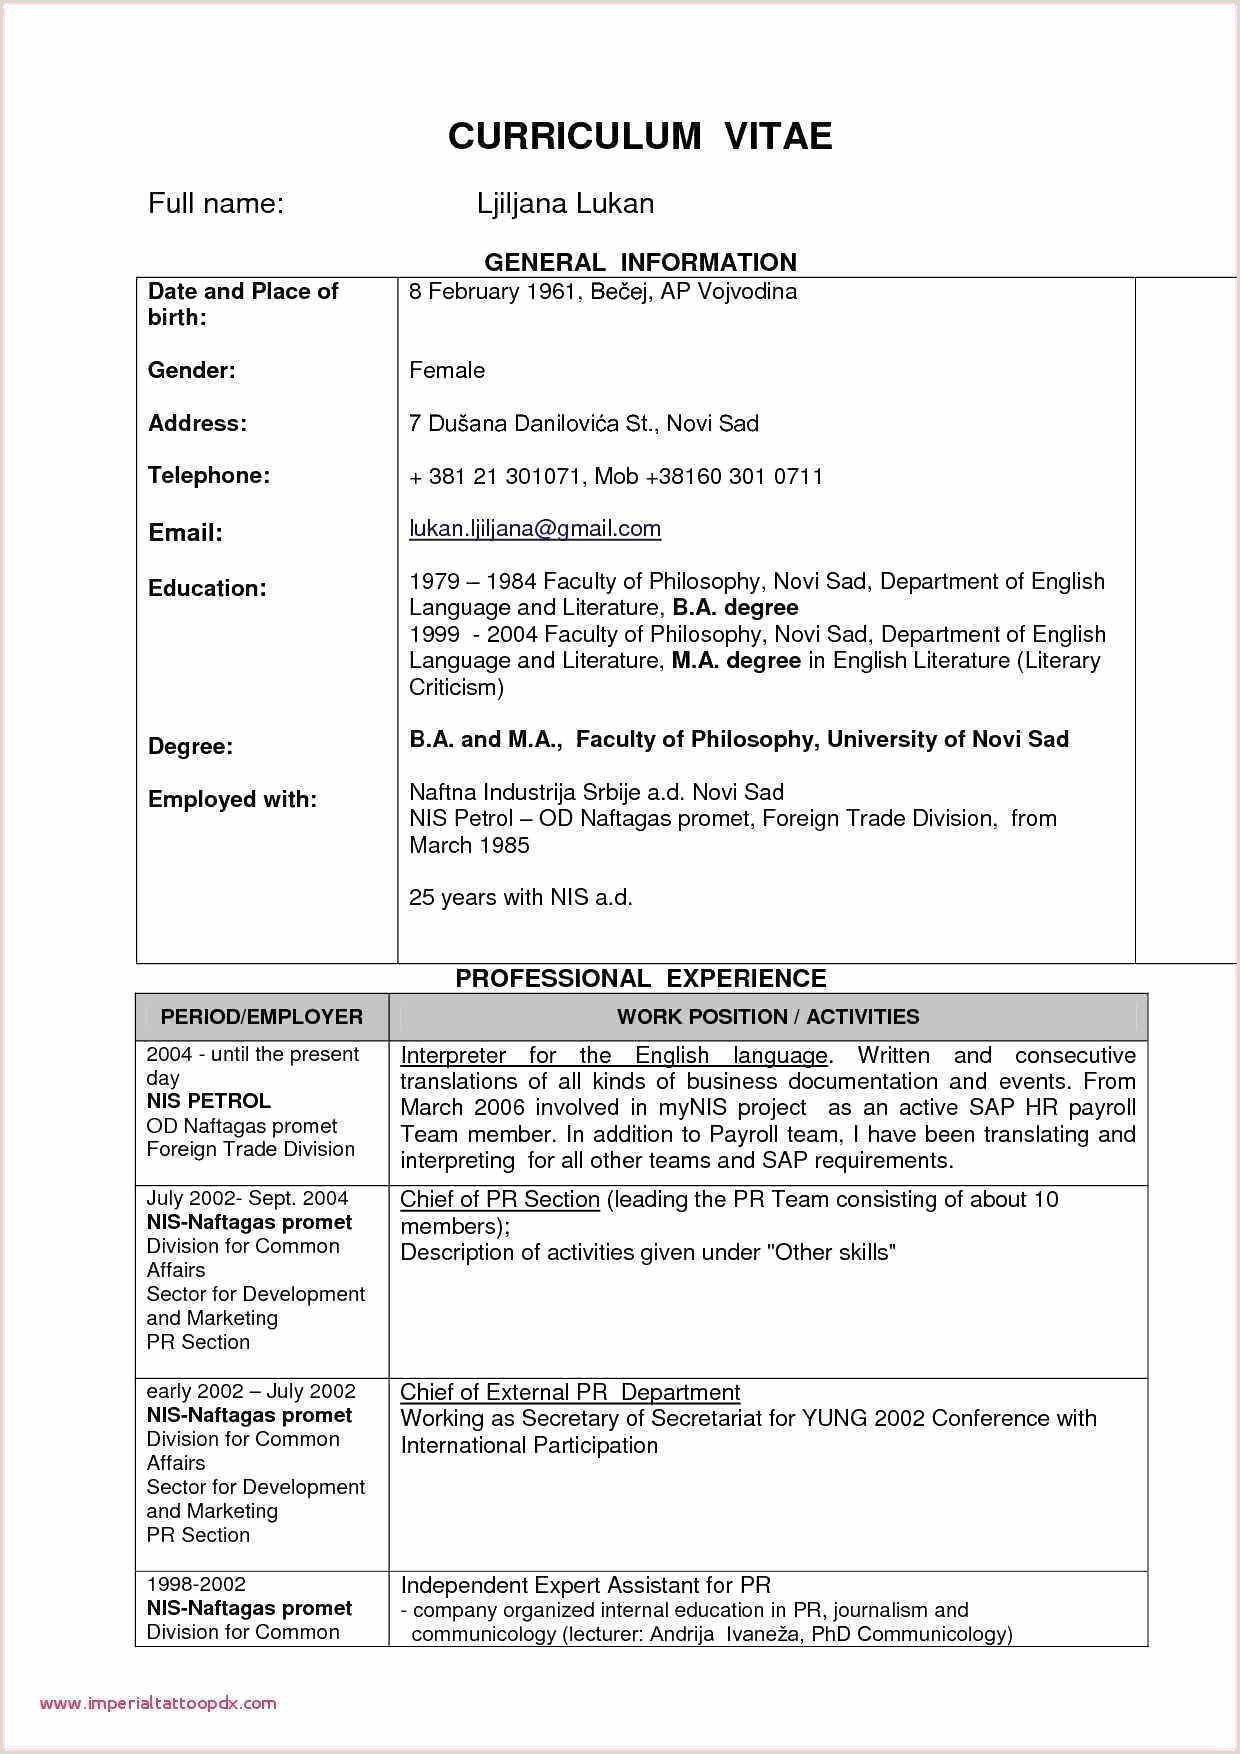 Software Engineer Cover Letter Example software Engineer Cover Letter Sample Nice software